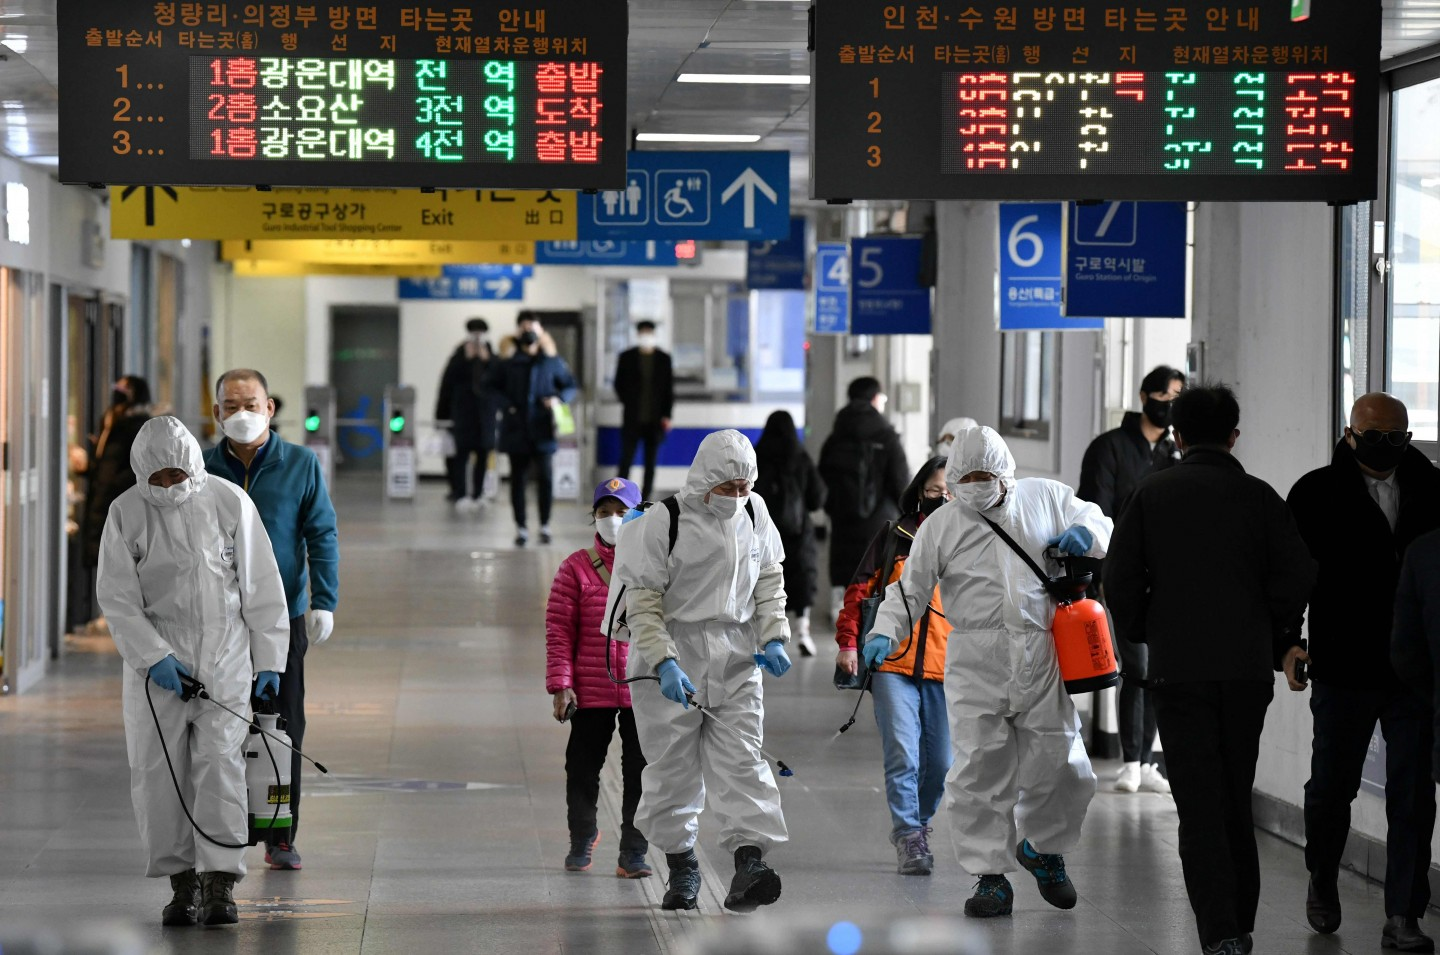 Workers wearing protective gear spray disinfectant to help prevent the spread of the Covid-19 coronavirus, at a subway station in Seoul on 13 March 2020. (Jung Yeon-je/AFP)